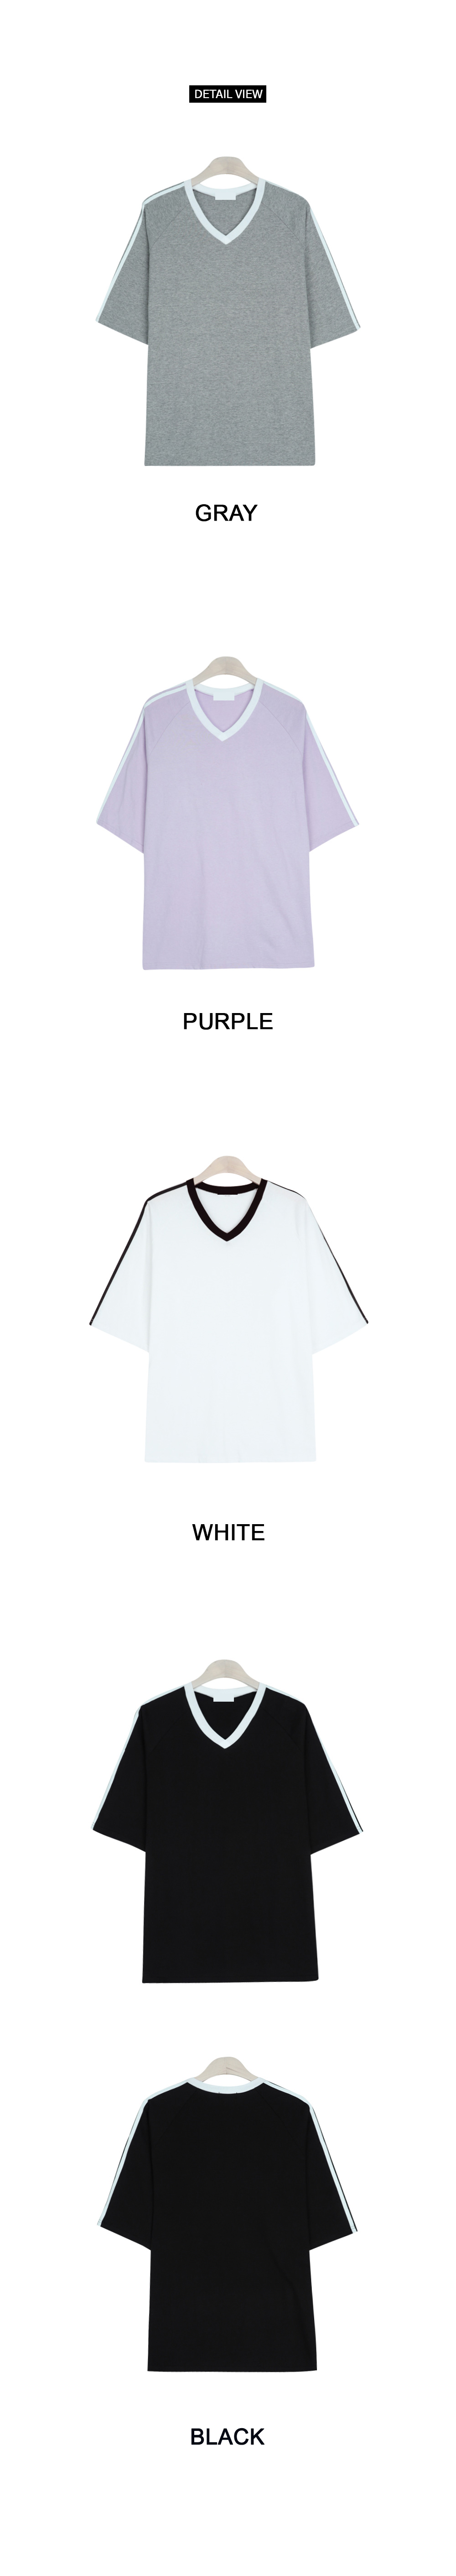 Simple color V neck short sleeve tee